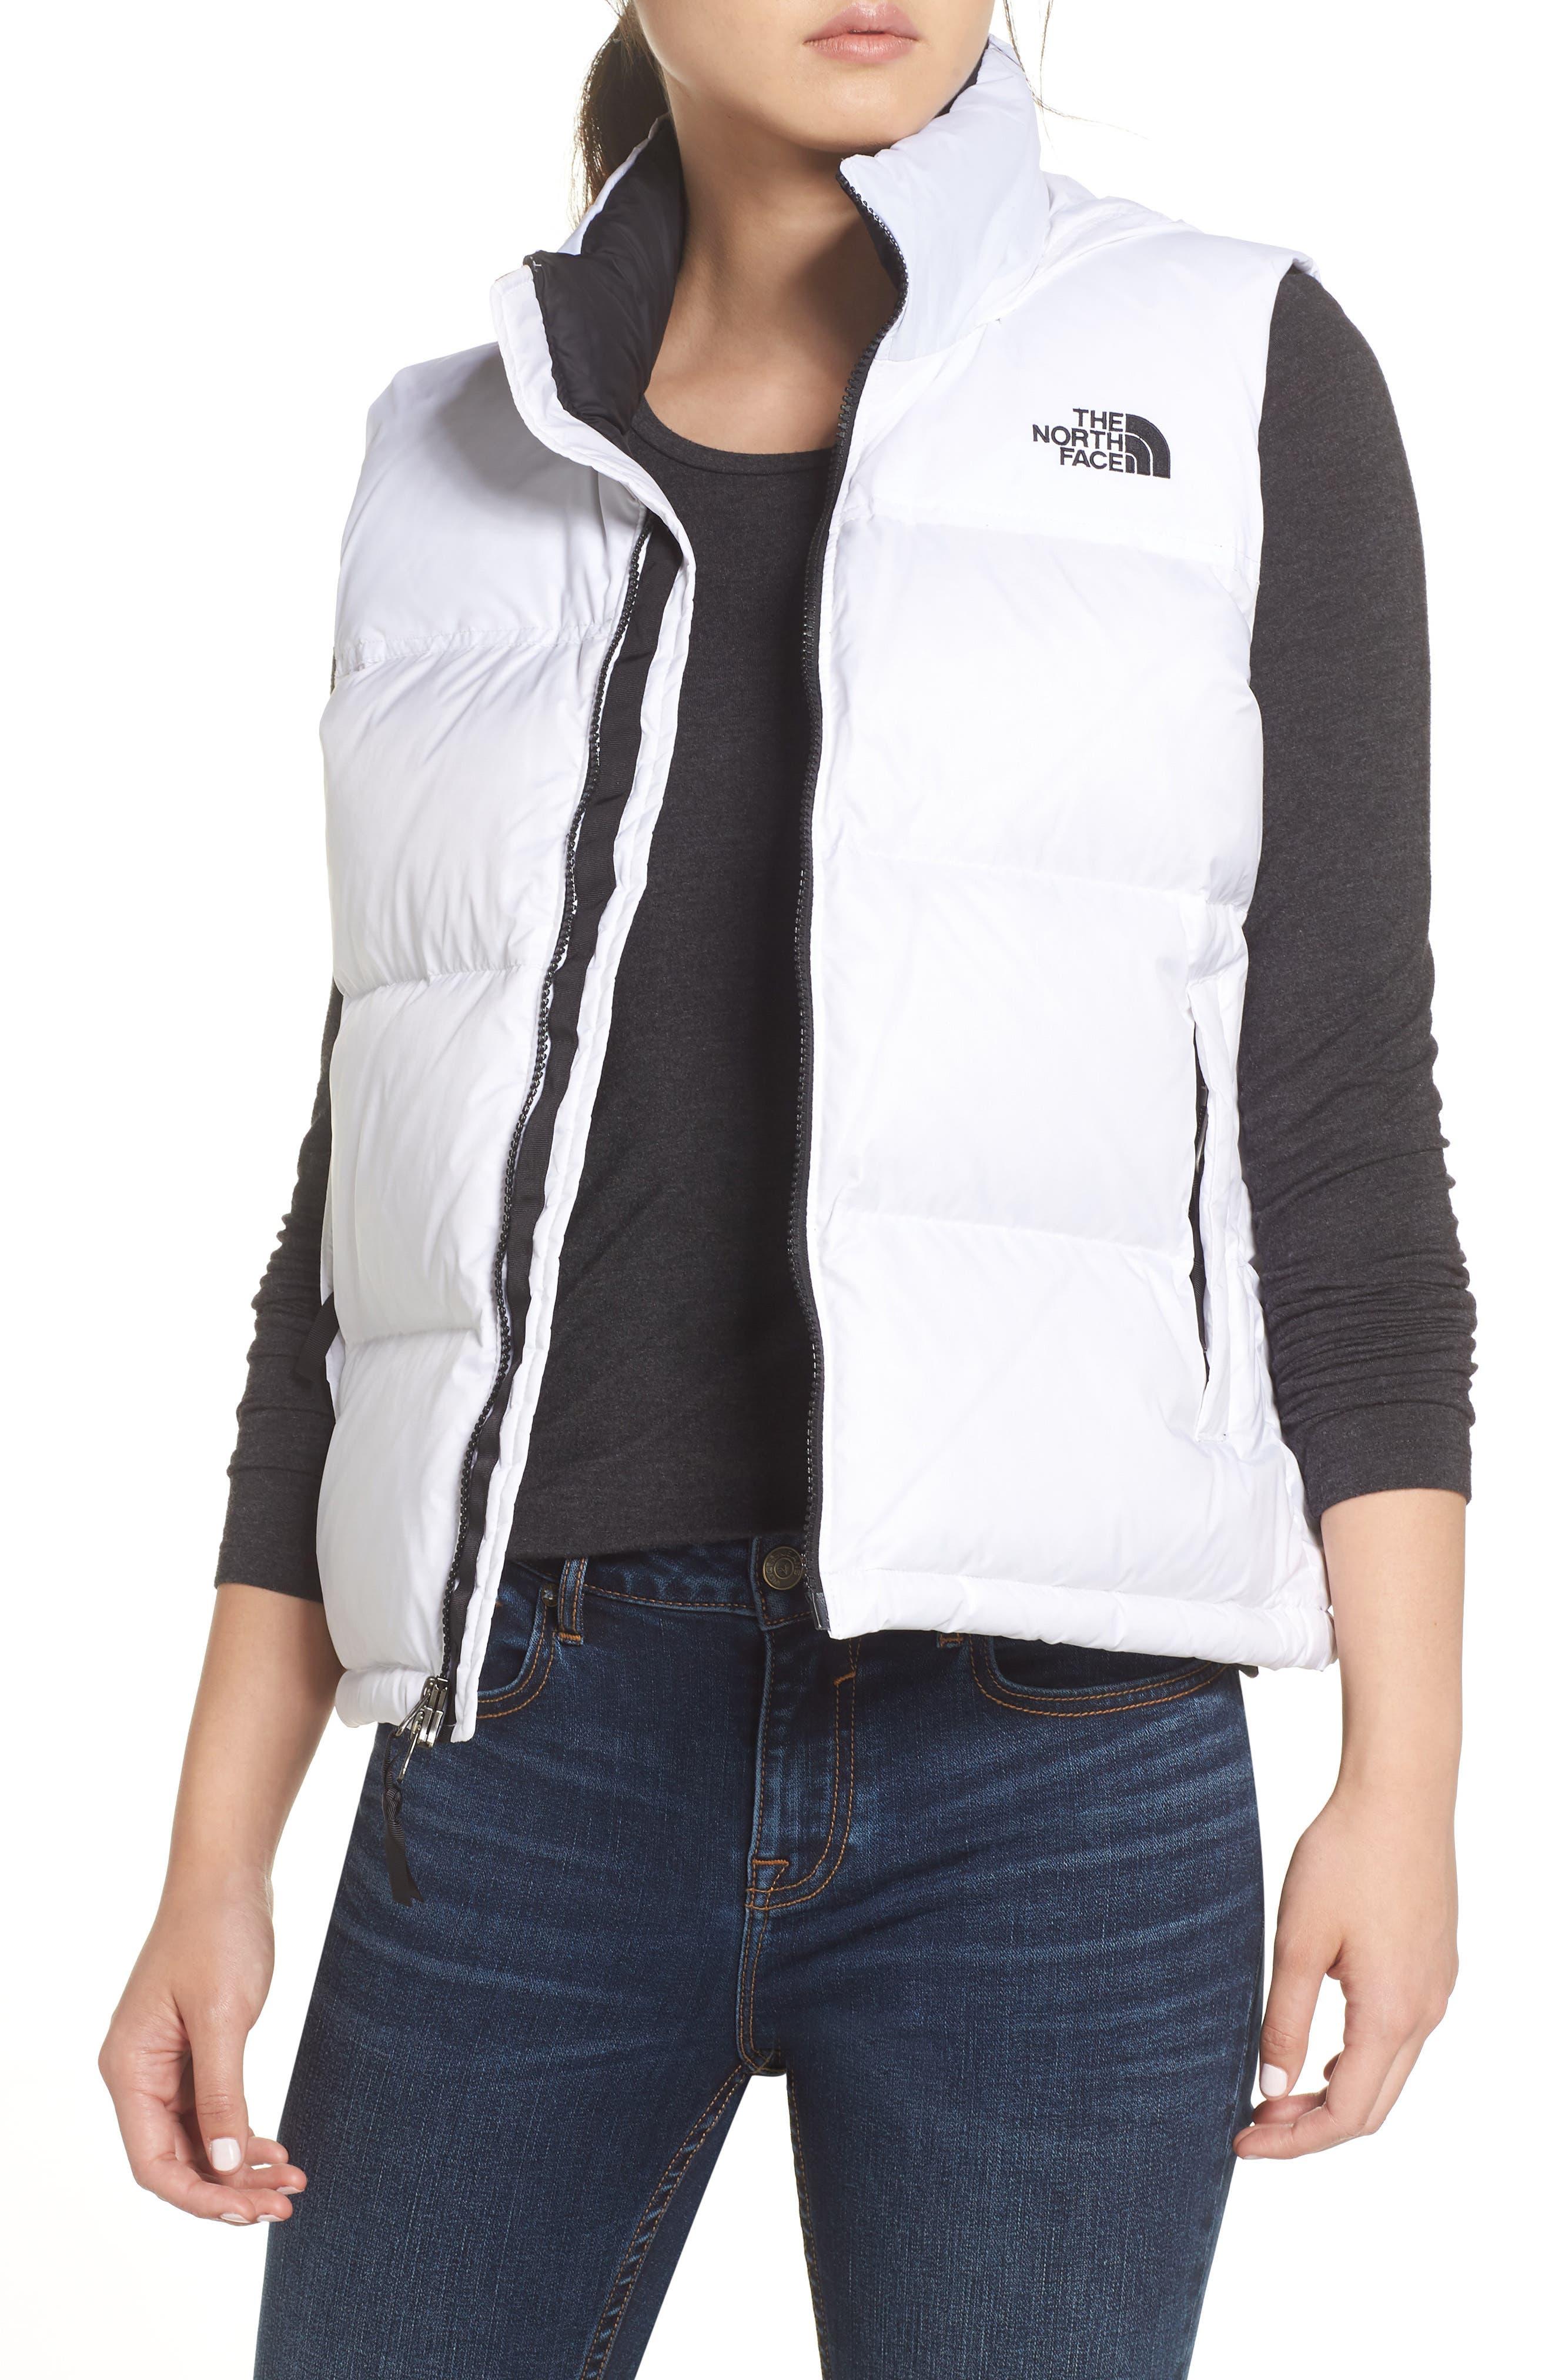 THE NORTH FACE Nuptse 1996 Packable 700-Fill Power Down Vest, Main, color, TNF WHITE